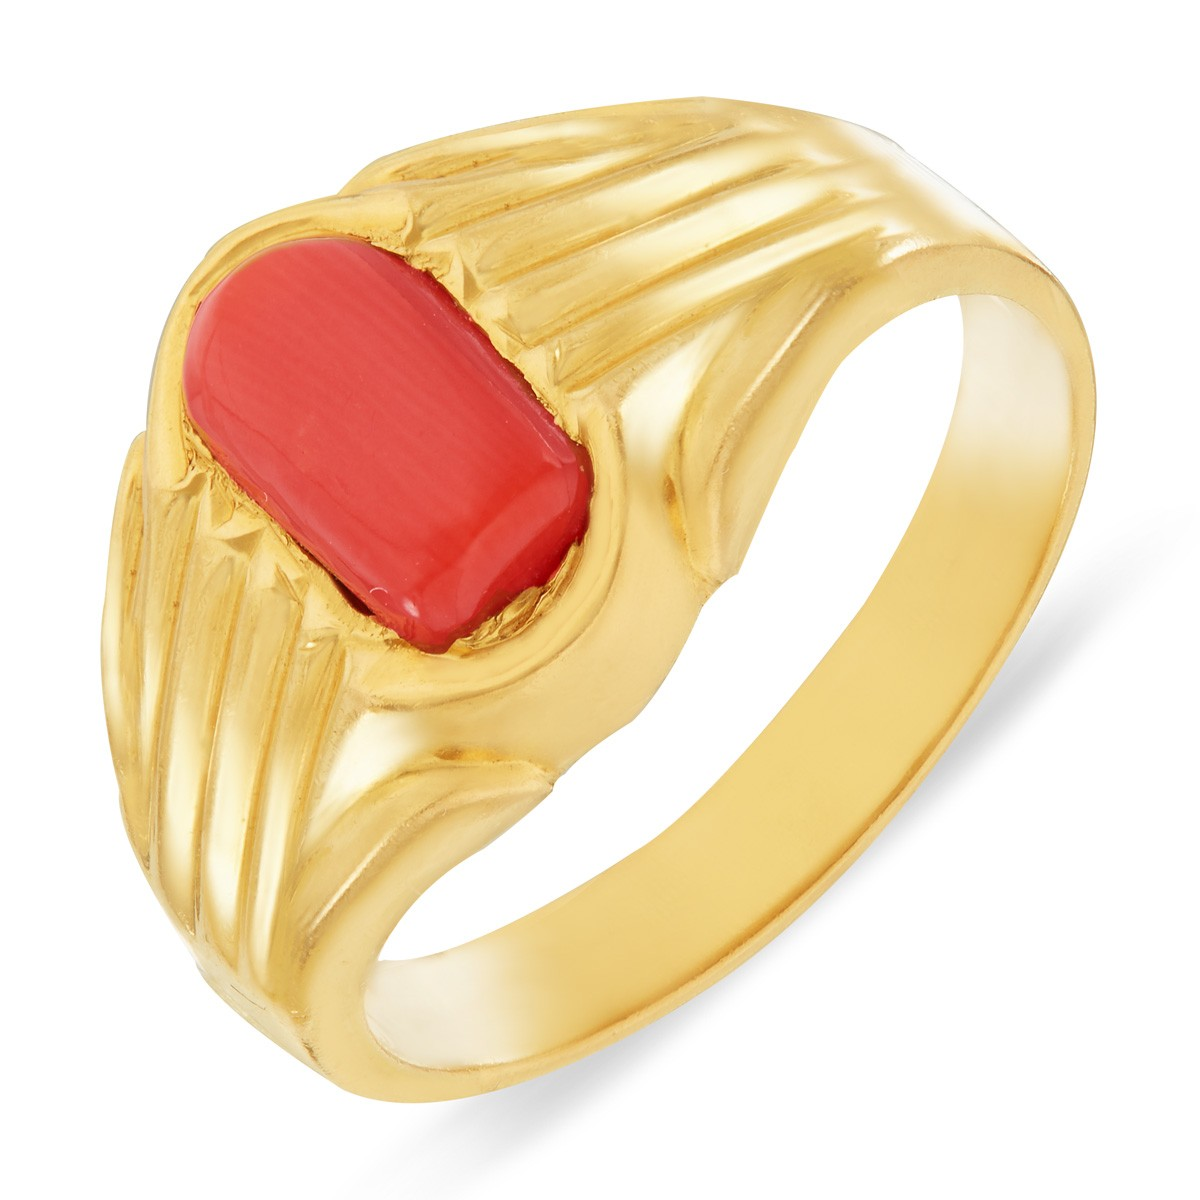 Buy Coral Stone Ring Buy Classic Design Gold Ring Red